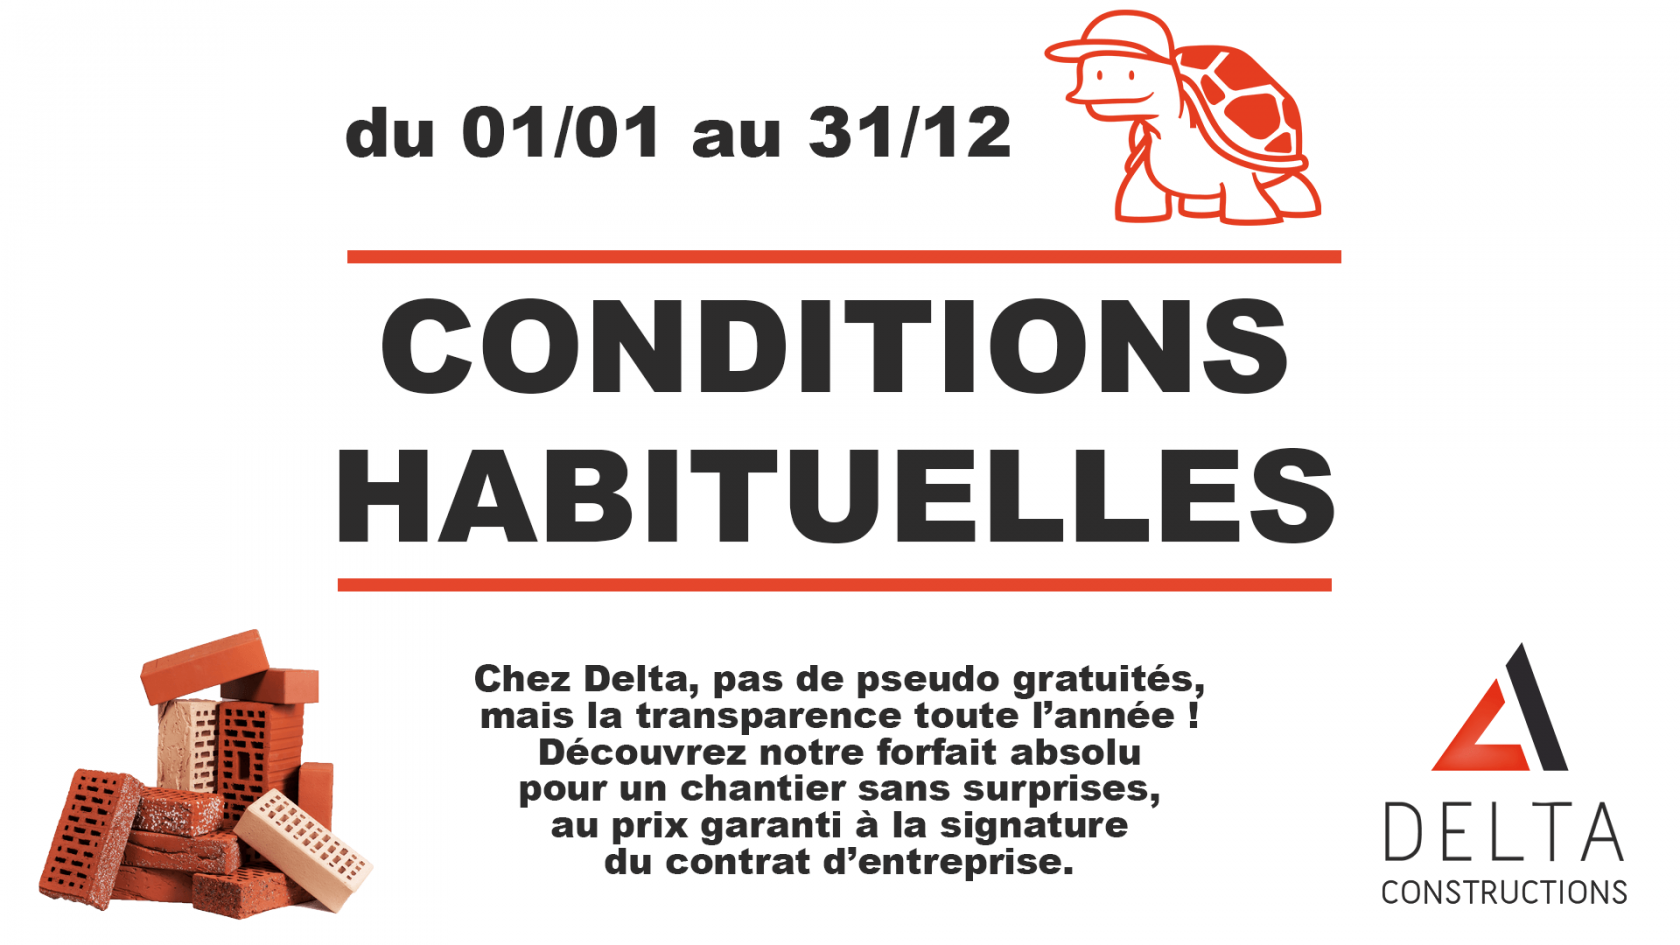 delta conditions habituelles